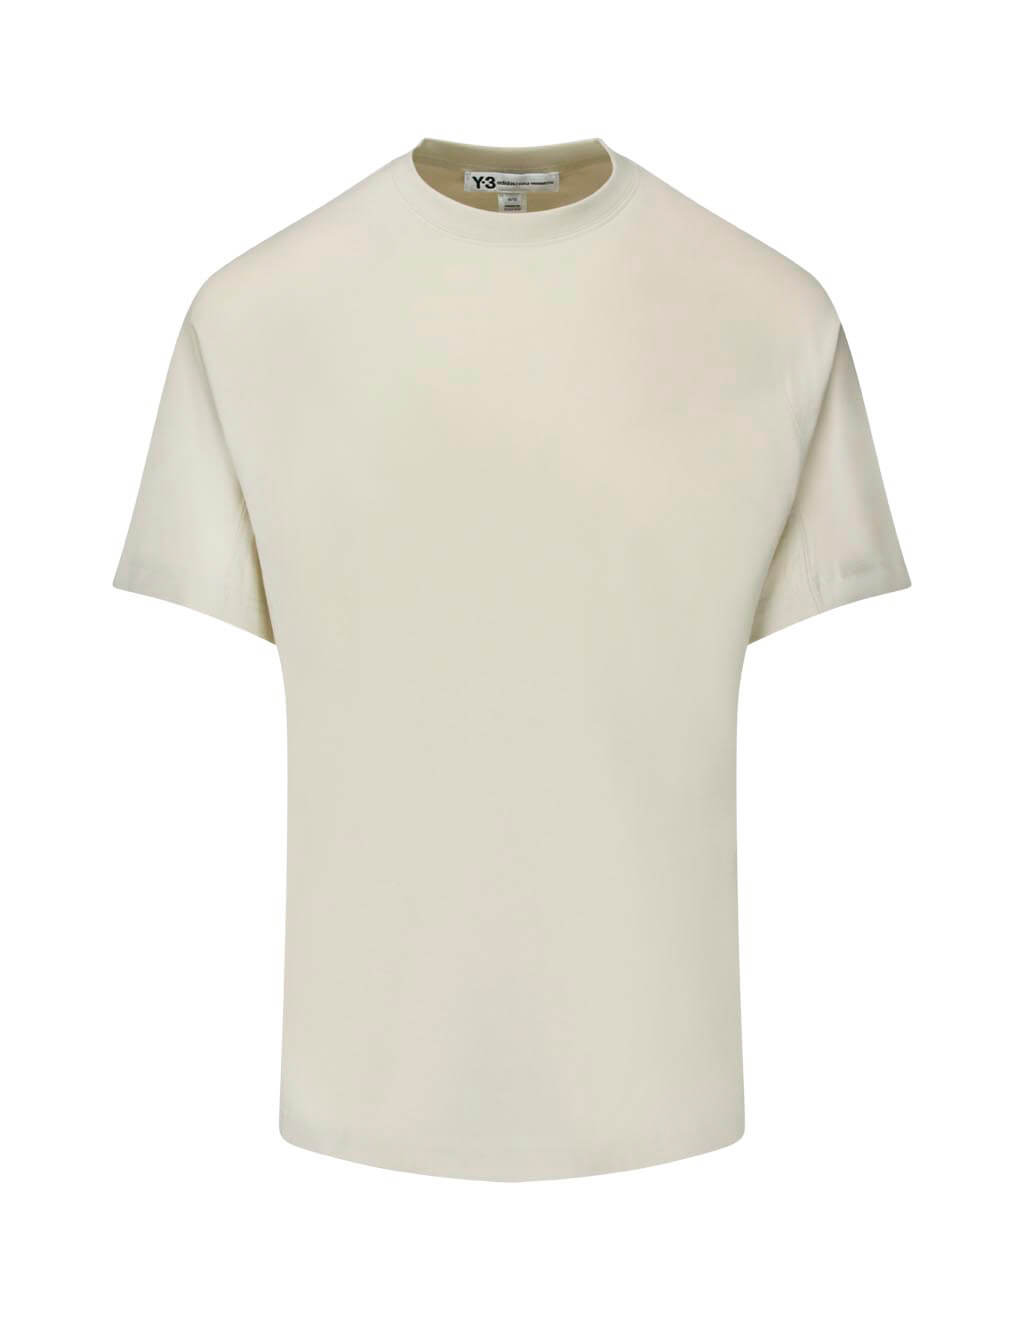 Y-3 Men's Giulio Fashion Ecru Classic Crewneck T-Shirt FJ0366